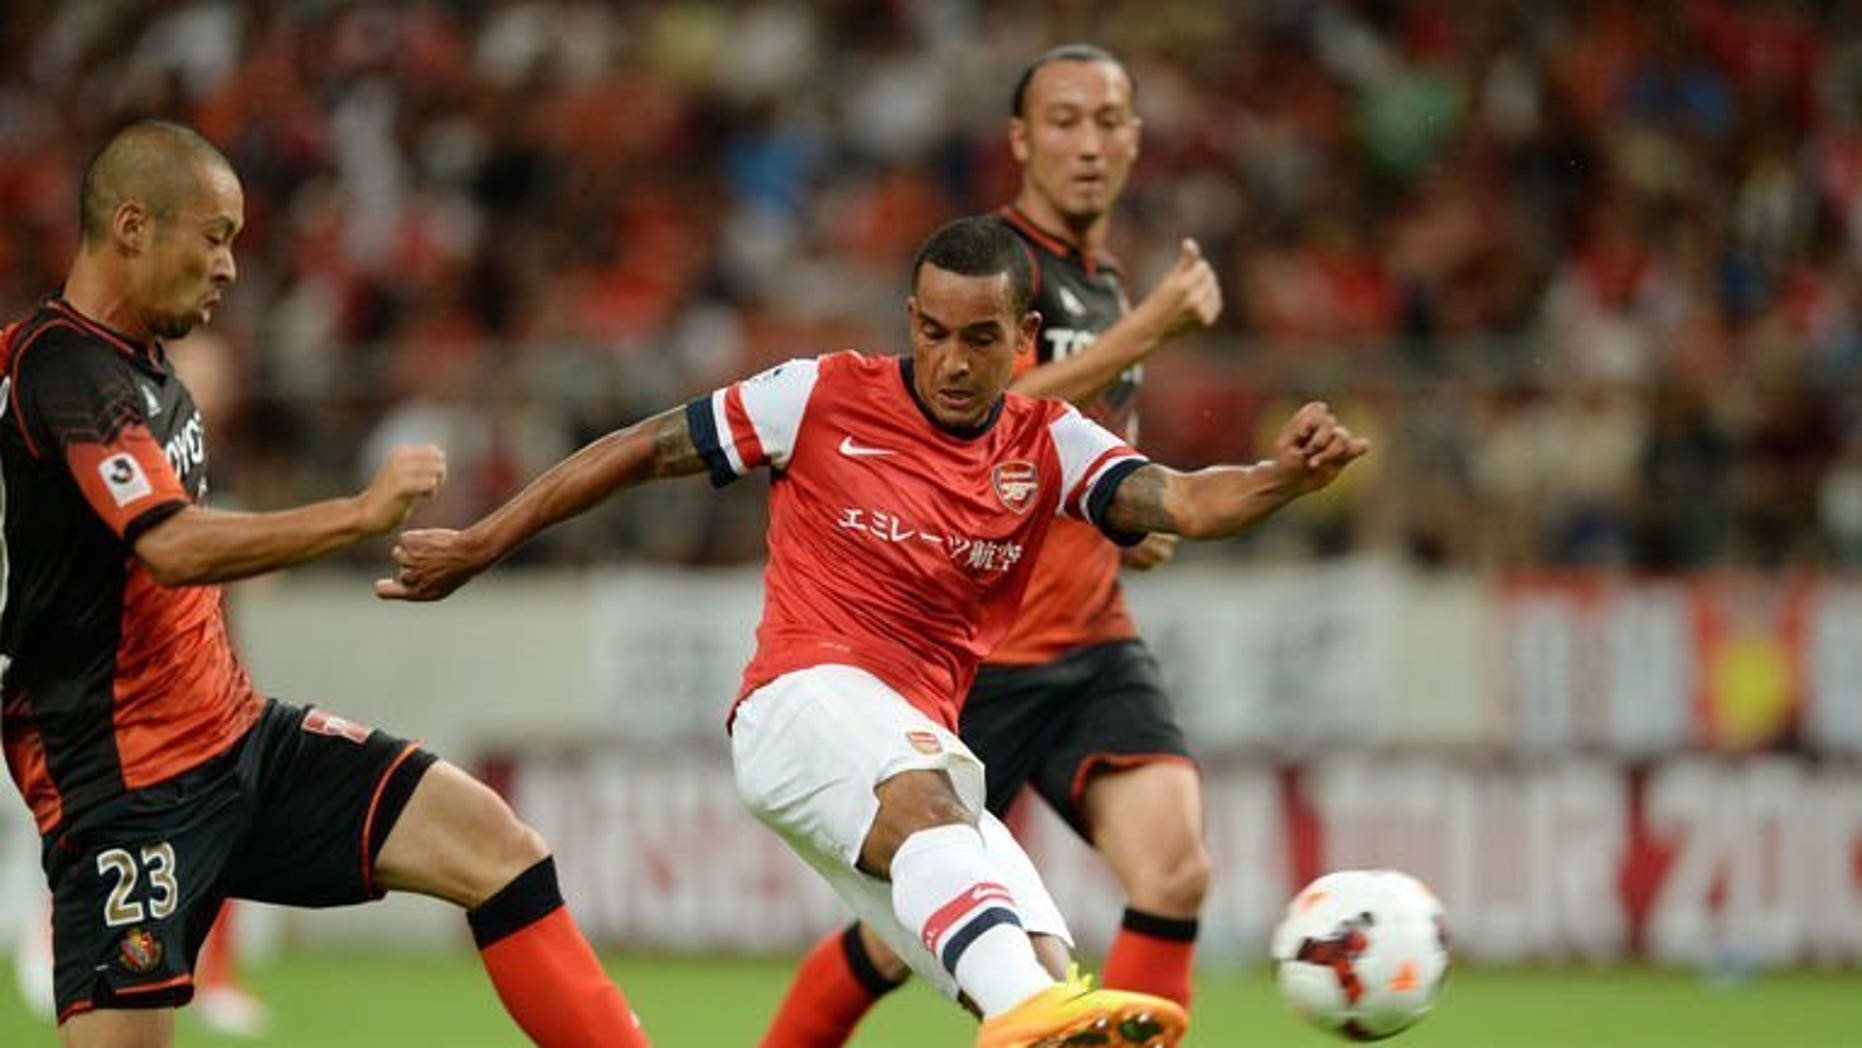 Arsenal forward Theo Walcott (C) shoots towards goal between Nagoya Grampus defenders during their friendly in Toyota, Japan's Aichi prefecture on July 22, 2013. French striker Olivier Giroud struck his sixth goal in three Asian tour games as Arsenal marked manager Arsene Wenger's return to his former club Grampus with a 3-1 win on Monday, with England's Walcott adding a third after half-time.